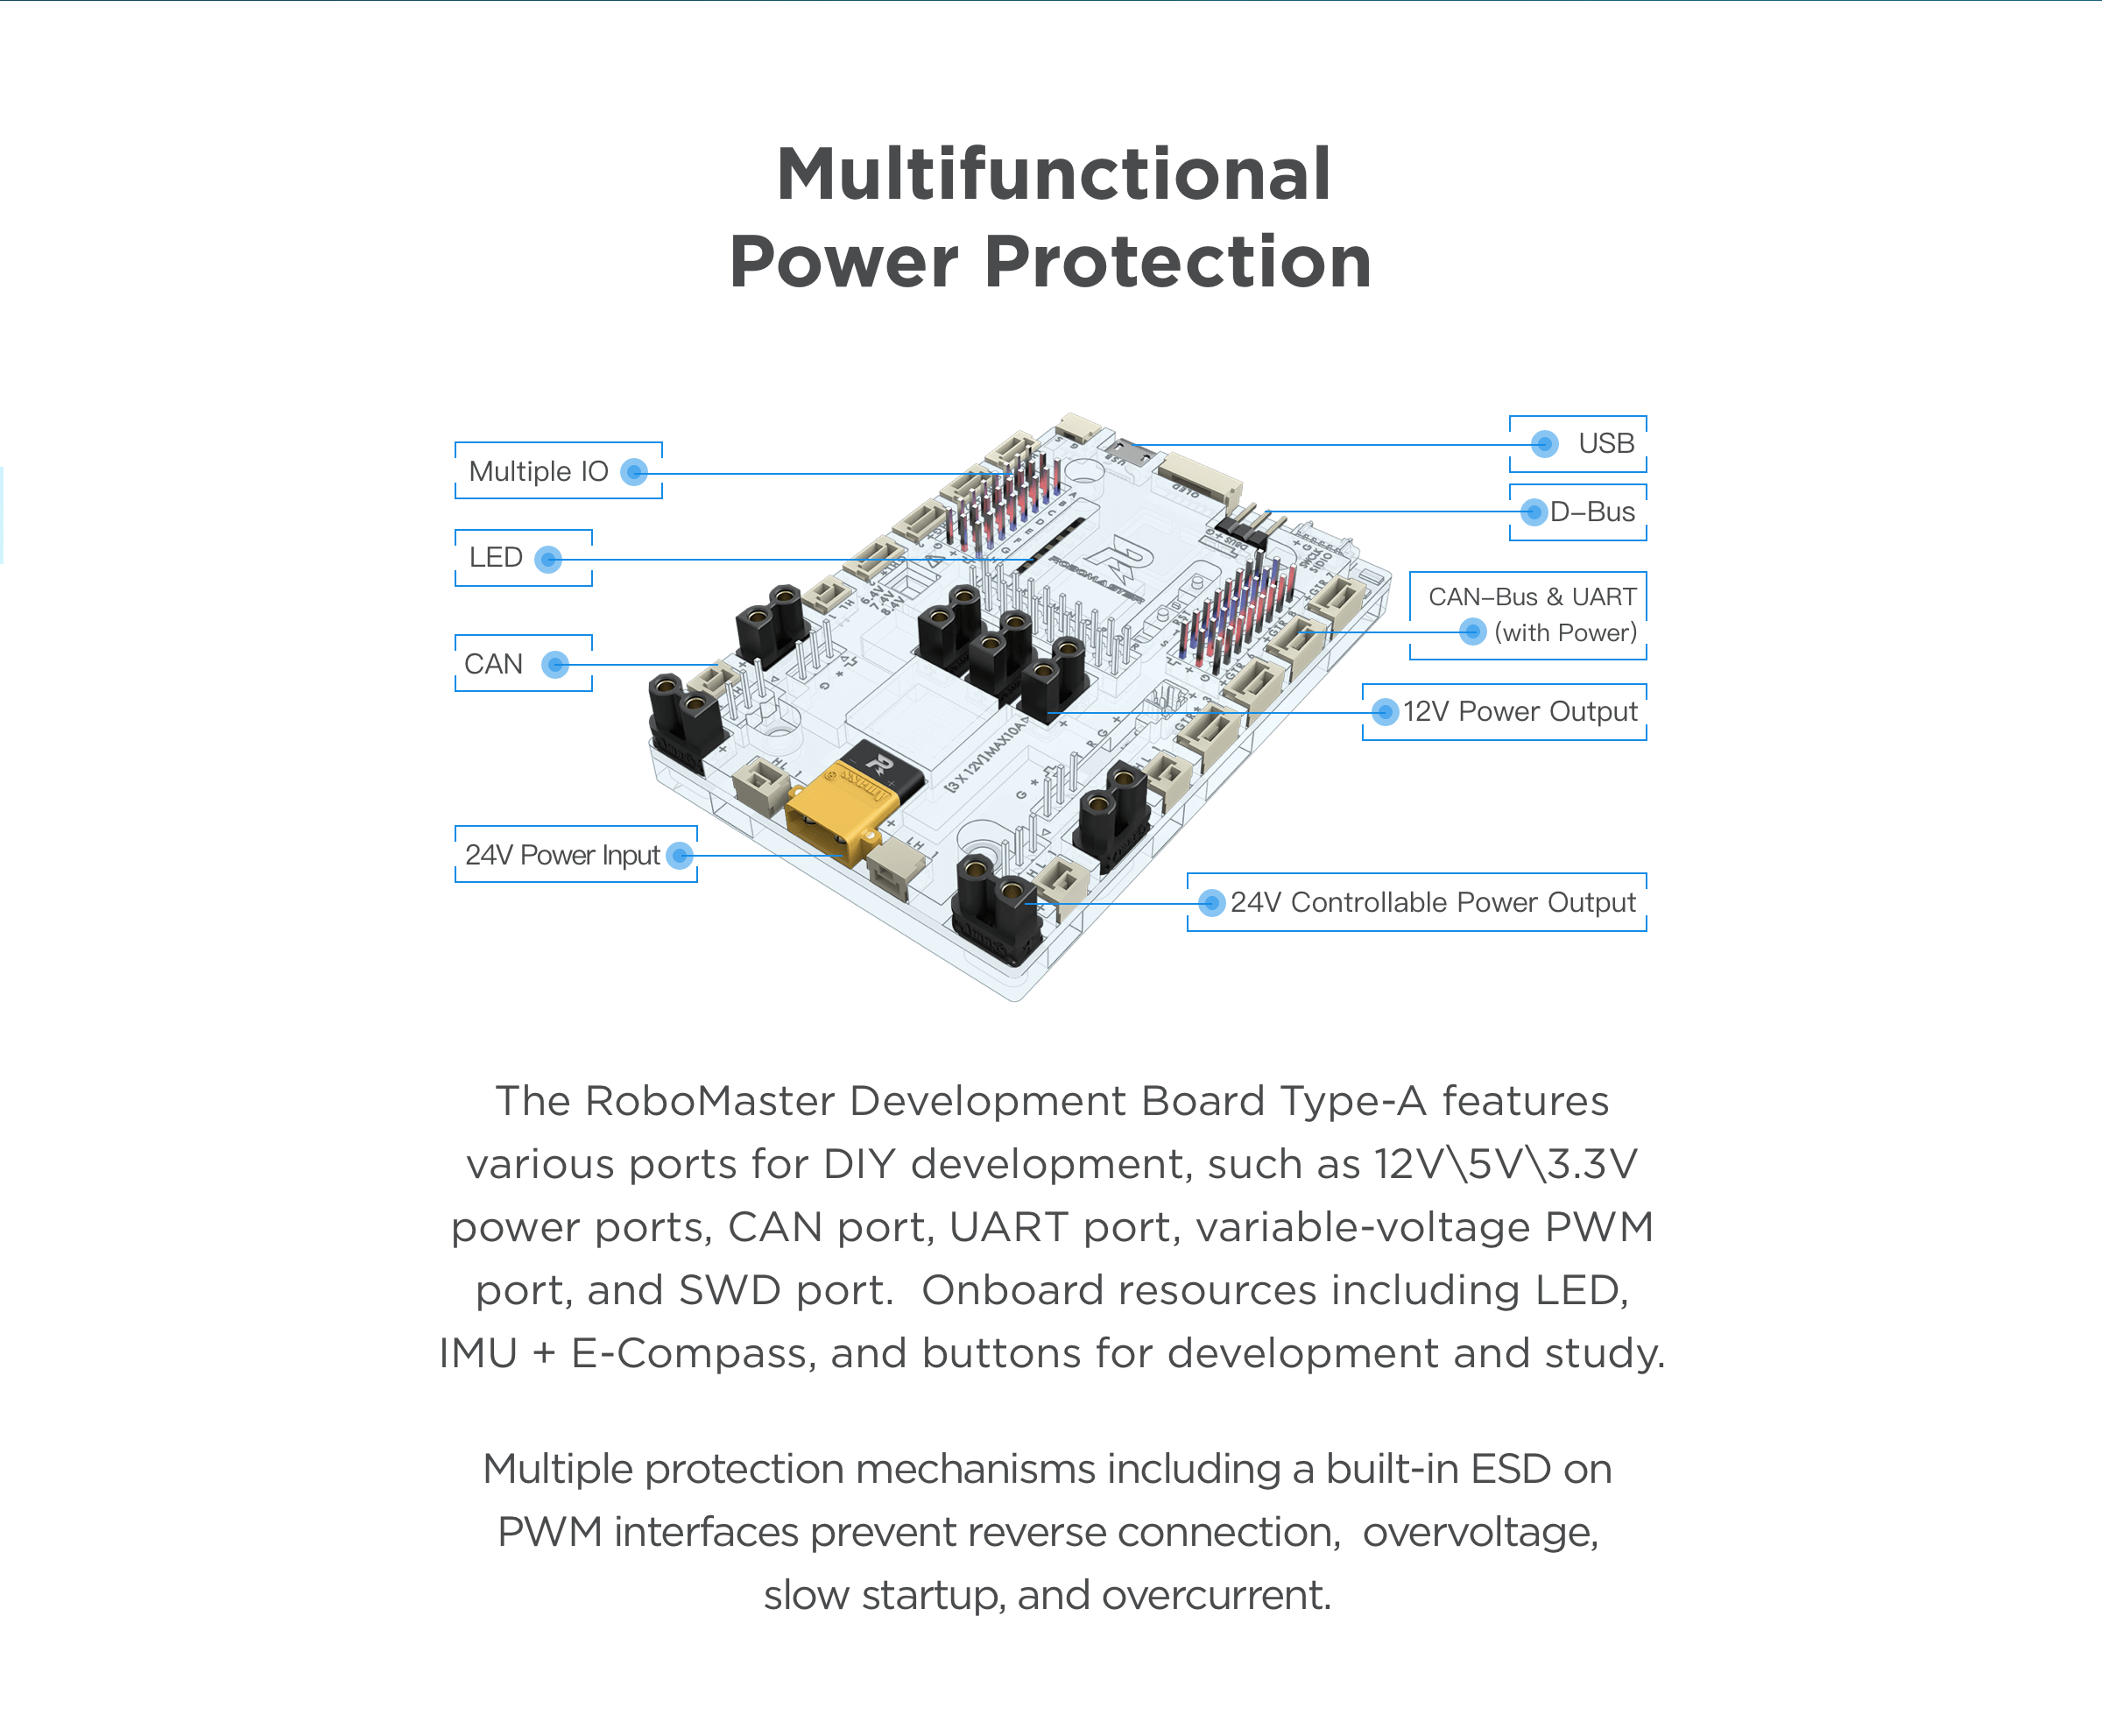 Multifunctional Power Protection